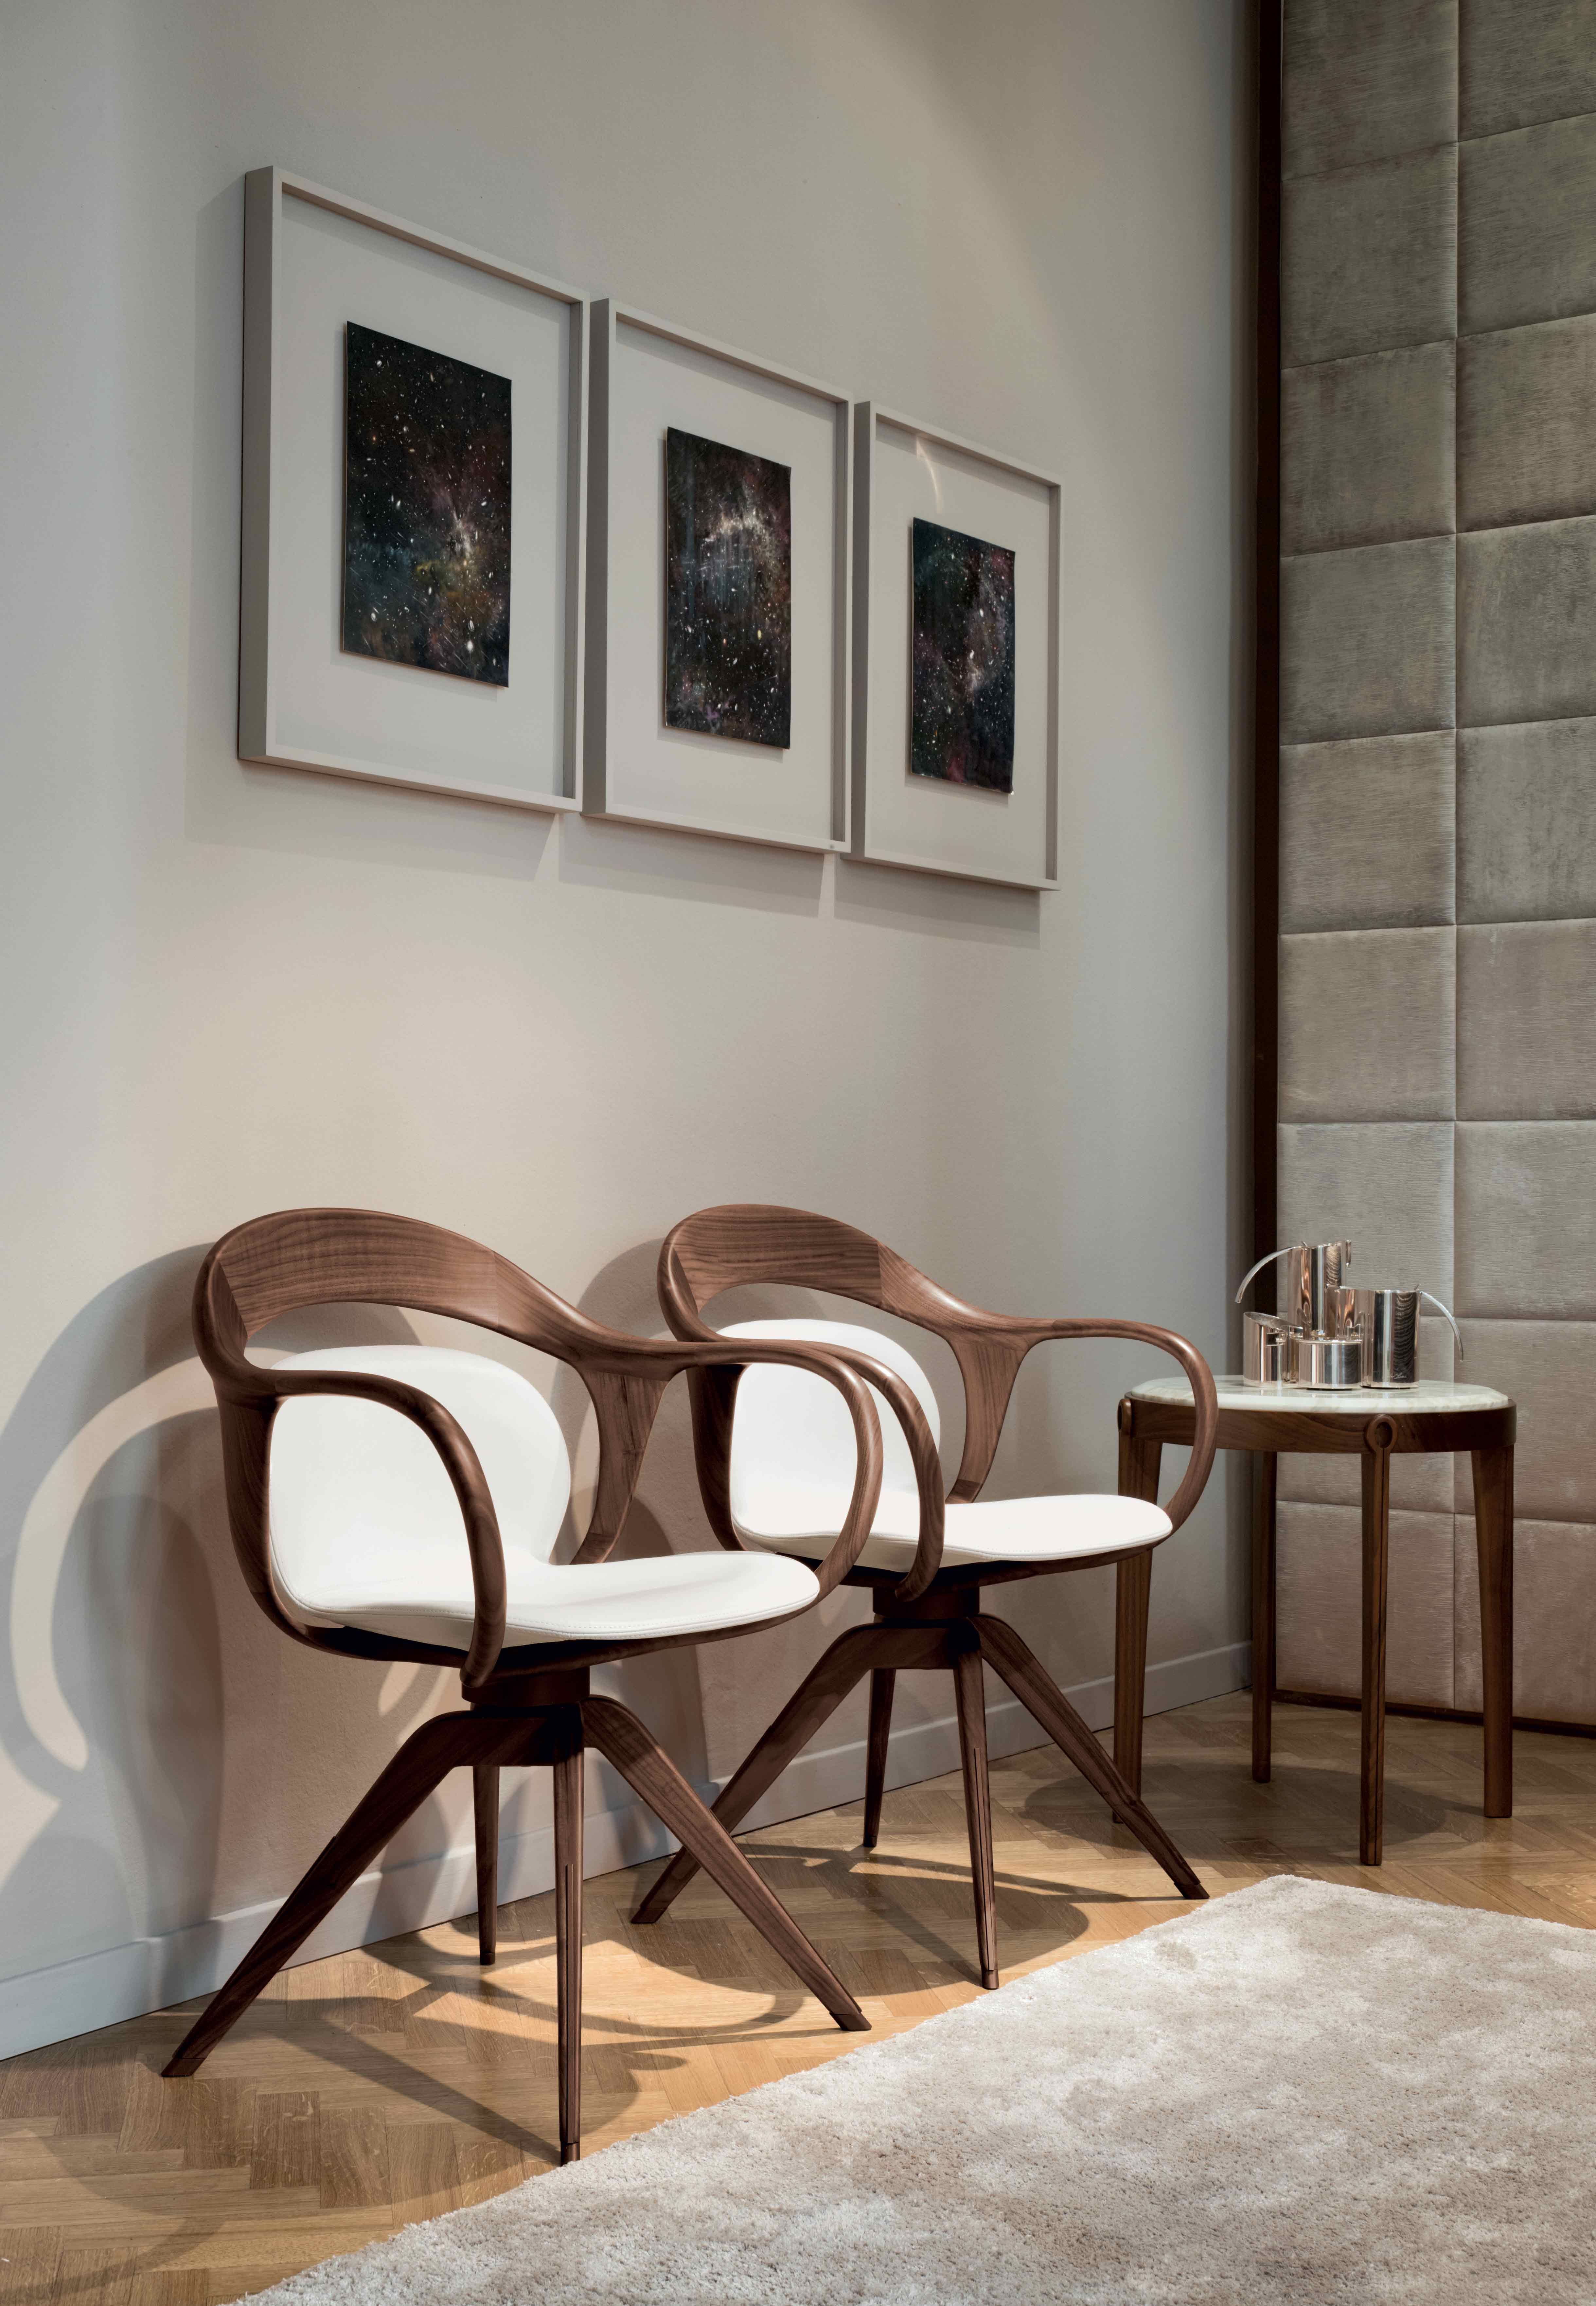 About A Chair 22 Armchair.Norah Chair 22 Pieces In Solid Walnut Canaletto Wood Create The